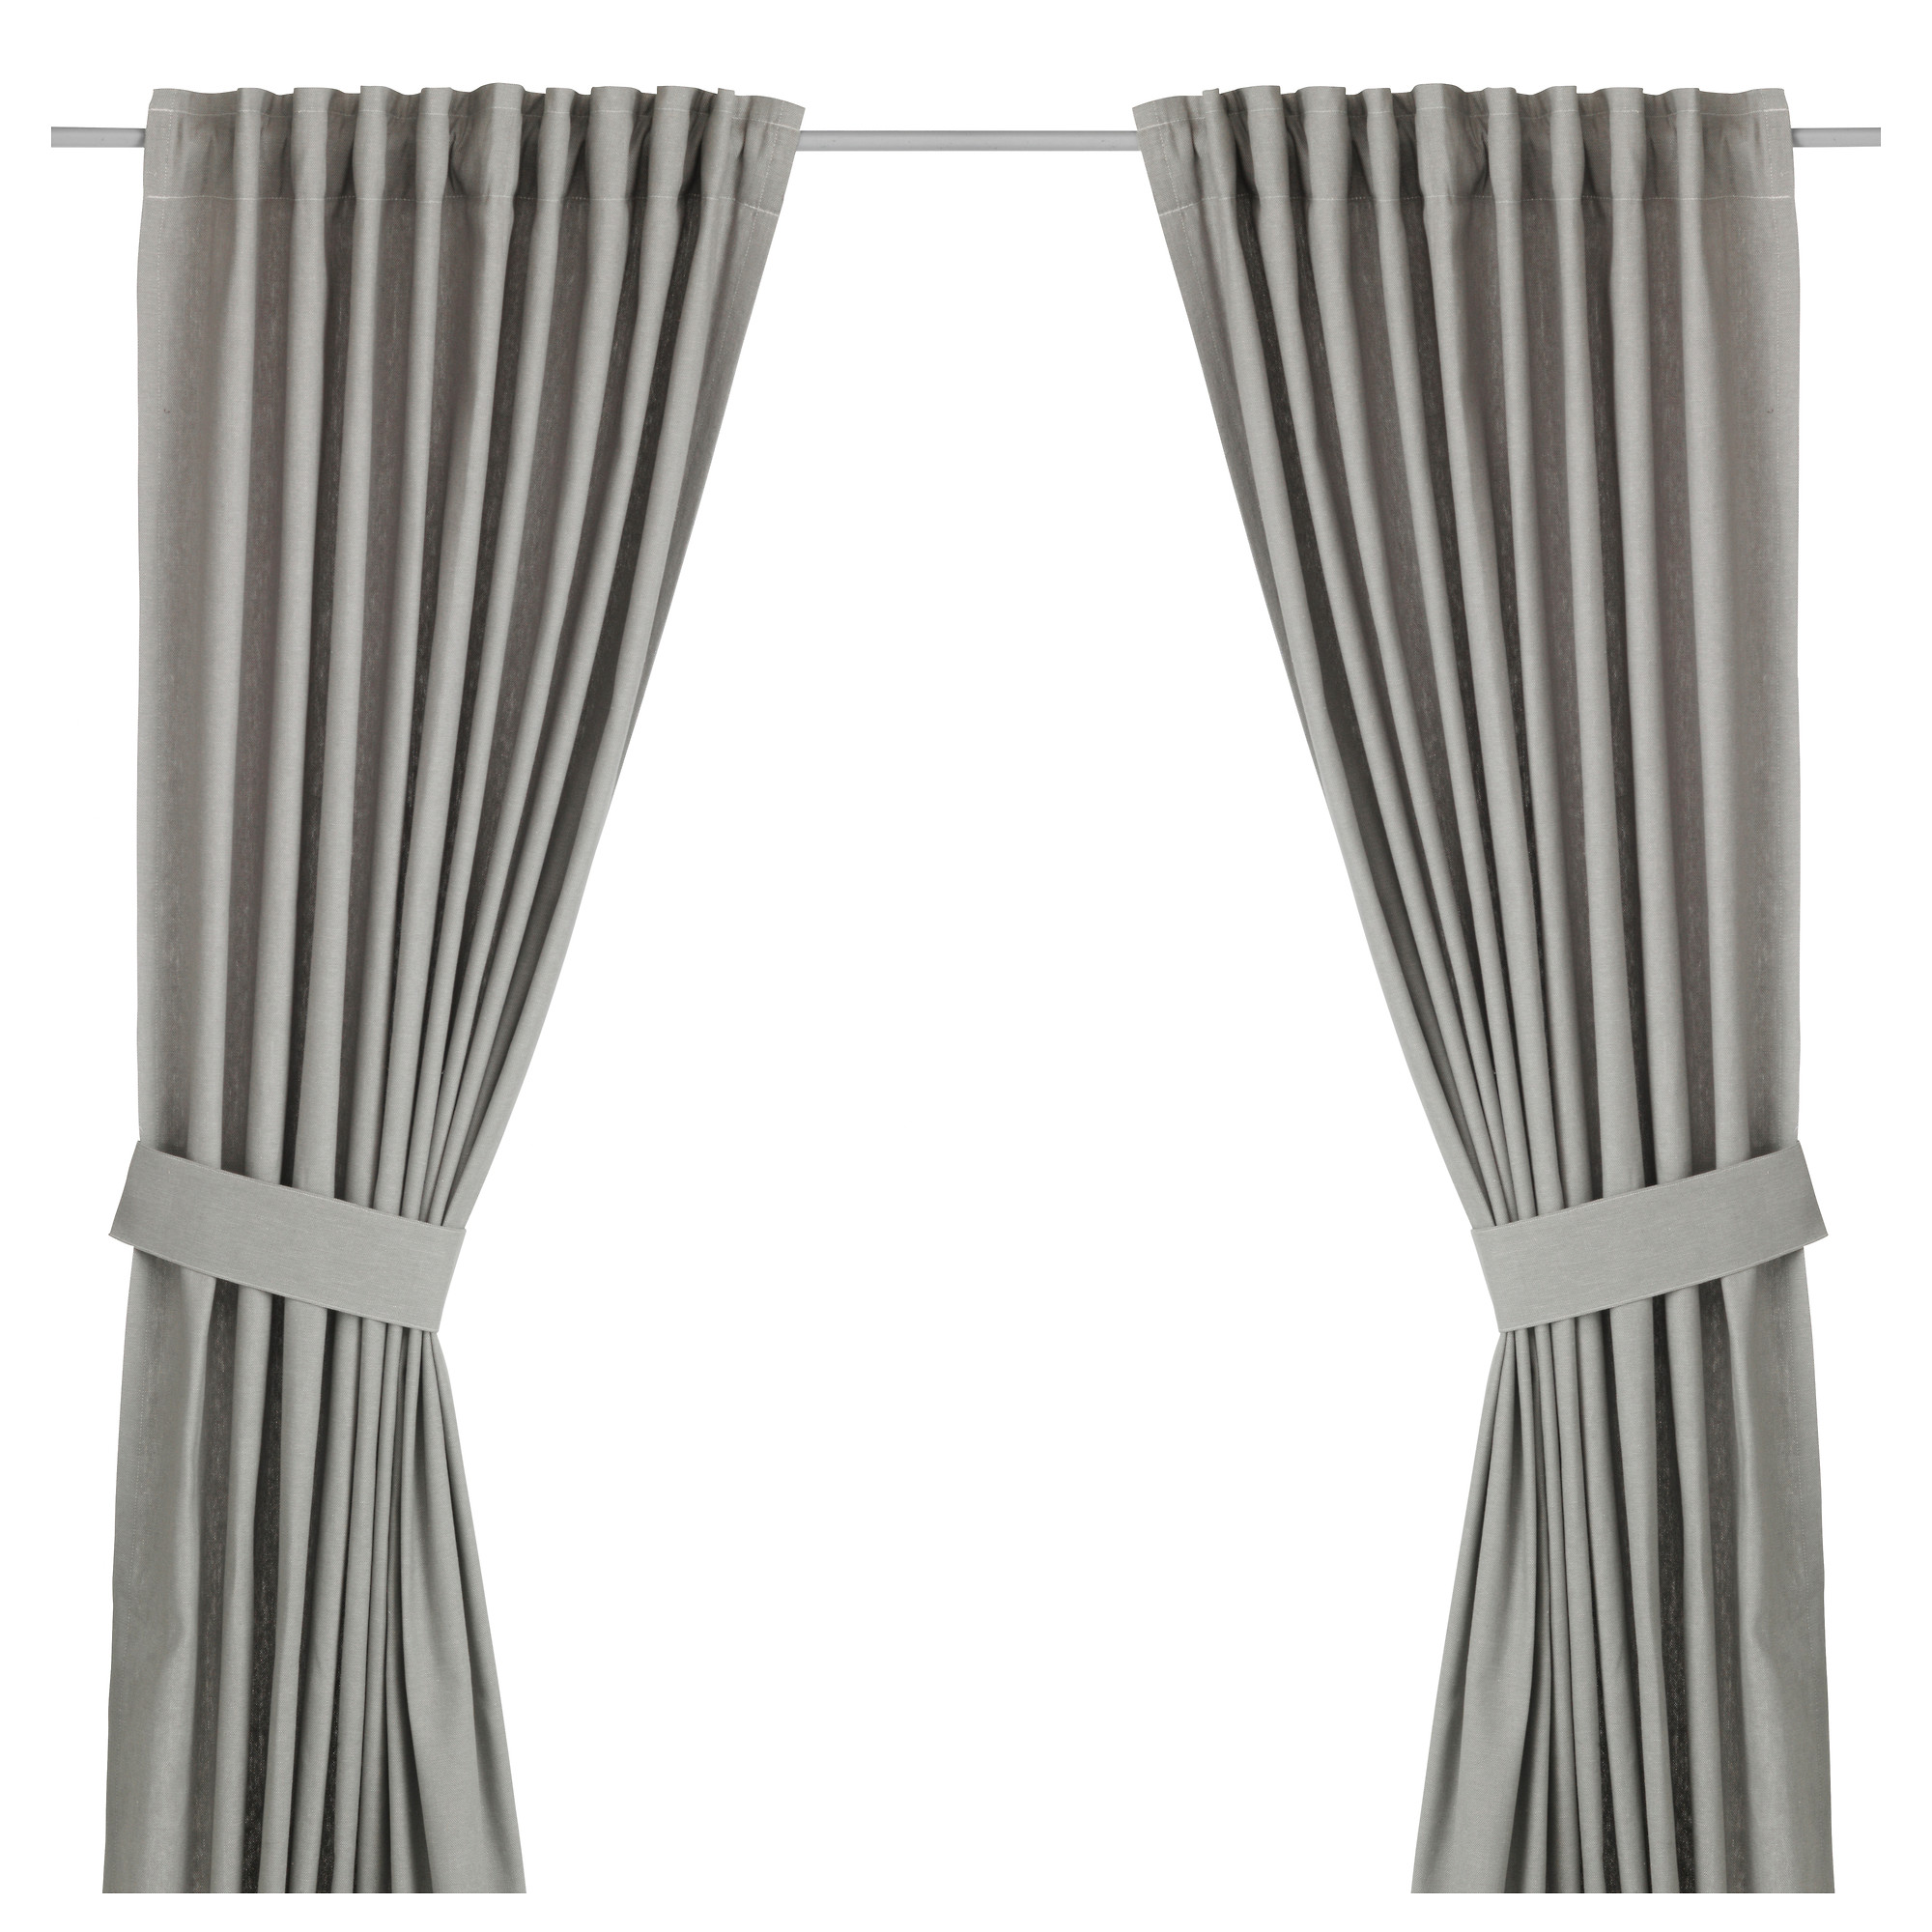 INGERT Curtains With Tie Backs, 1 Pair   IKEA